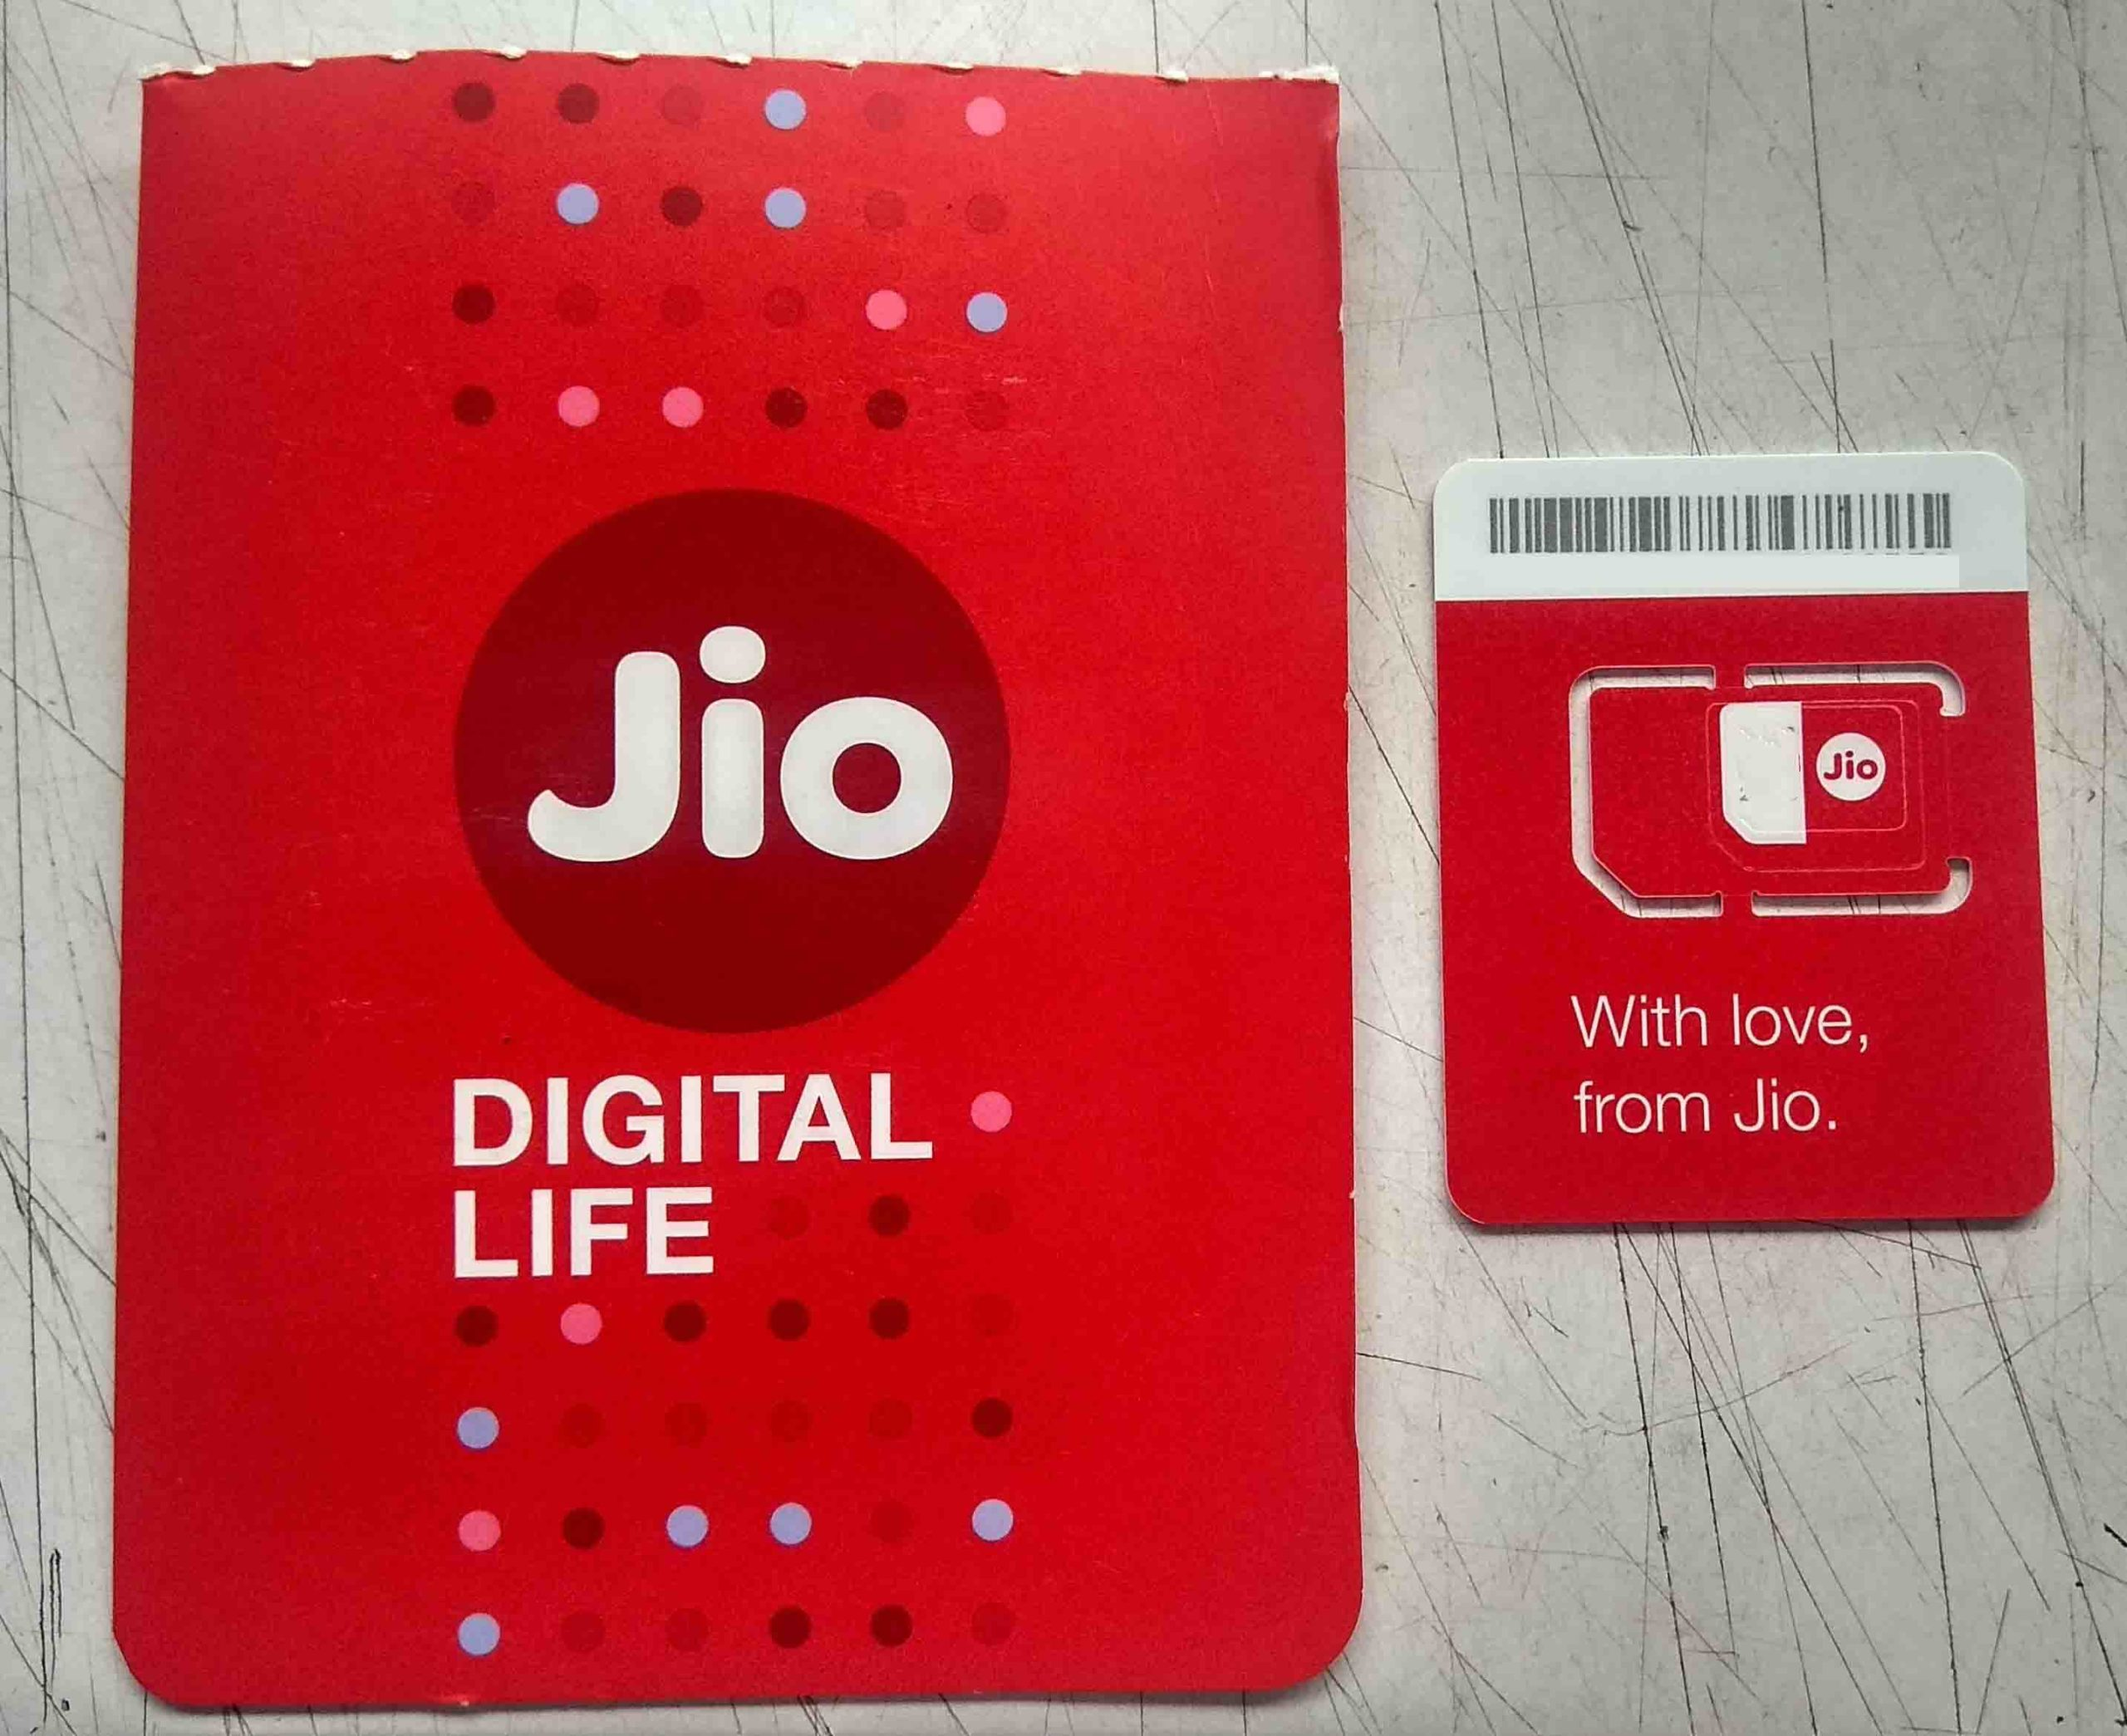 KKR invests Rs 11,367 Crore in Jio Platforms, taking total investments in Jio upto Rs 78,562 Crore